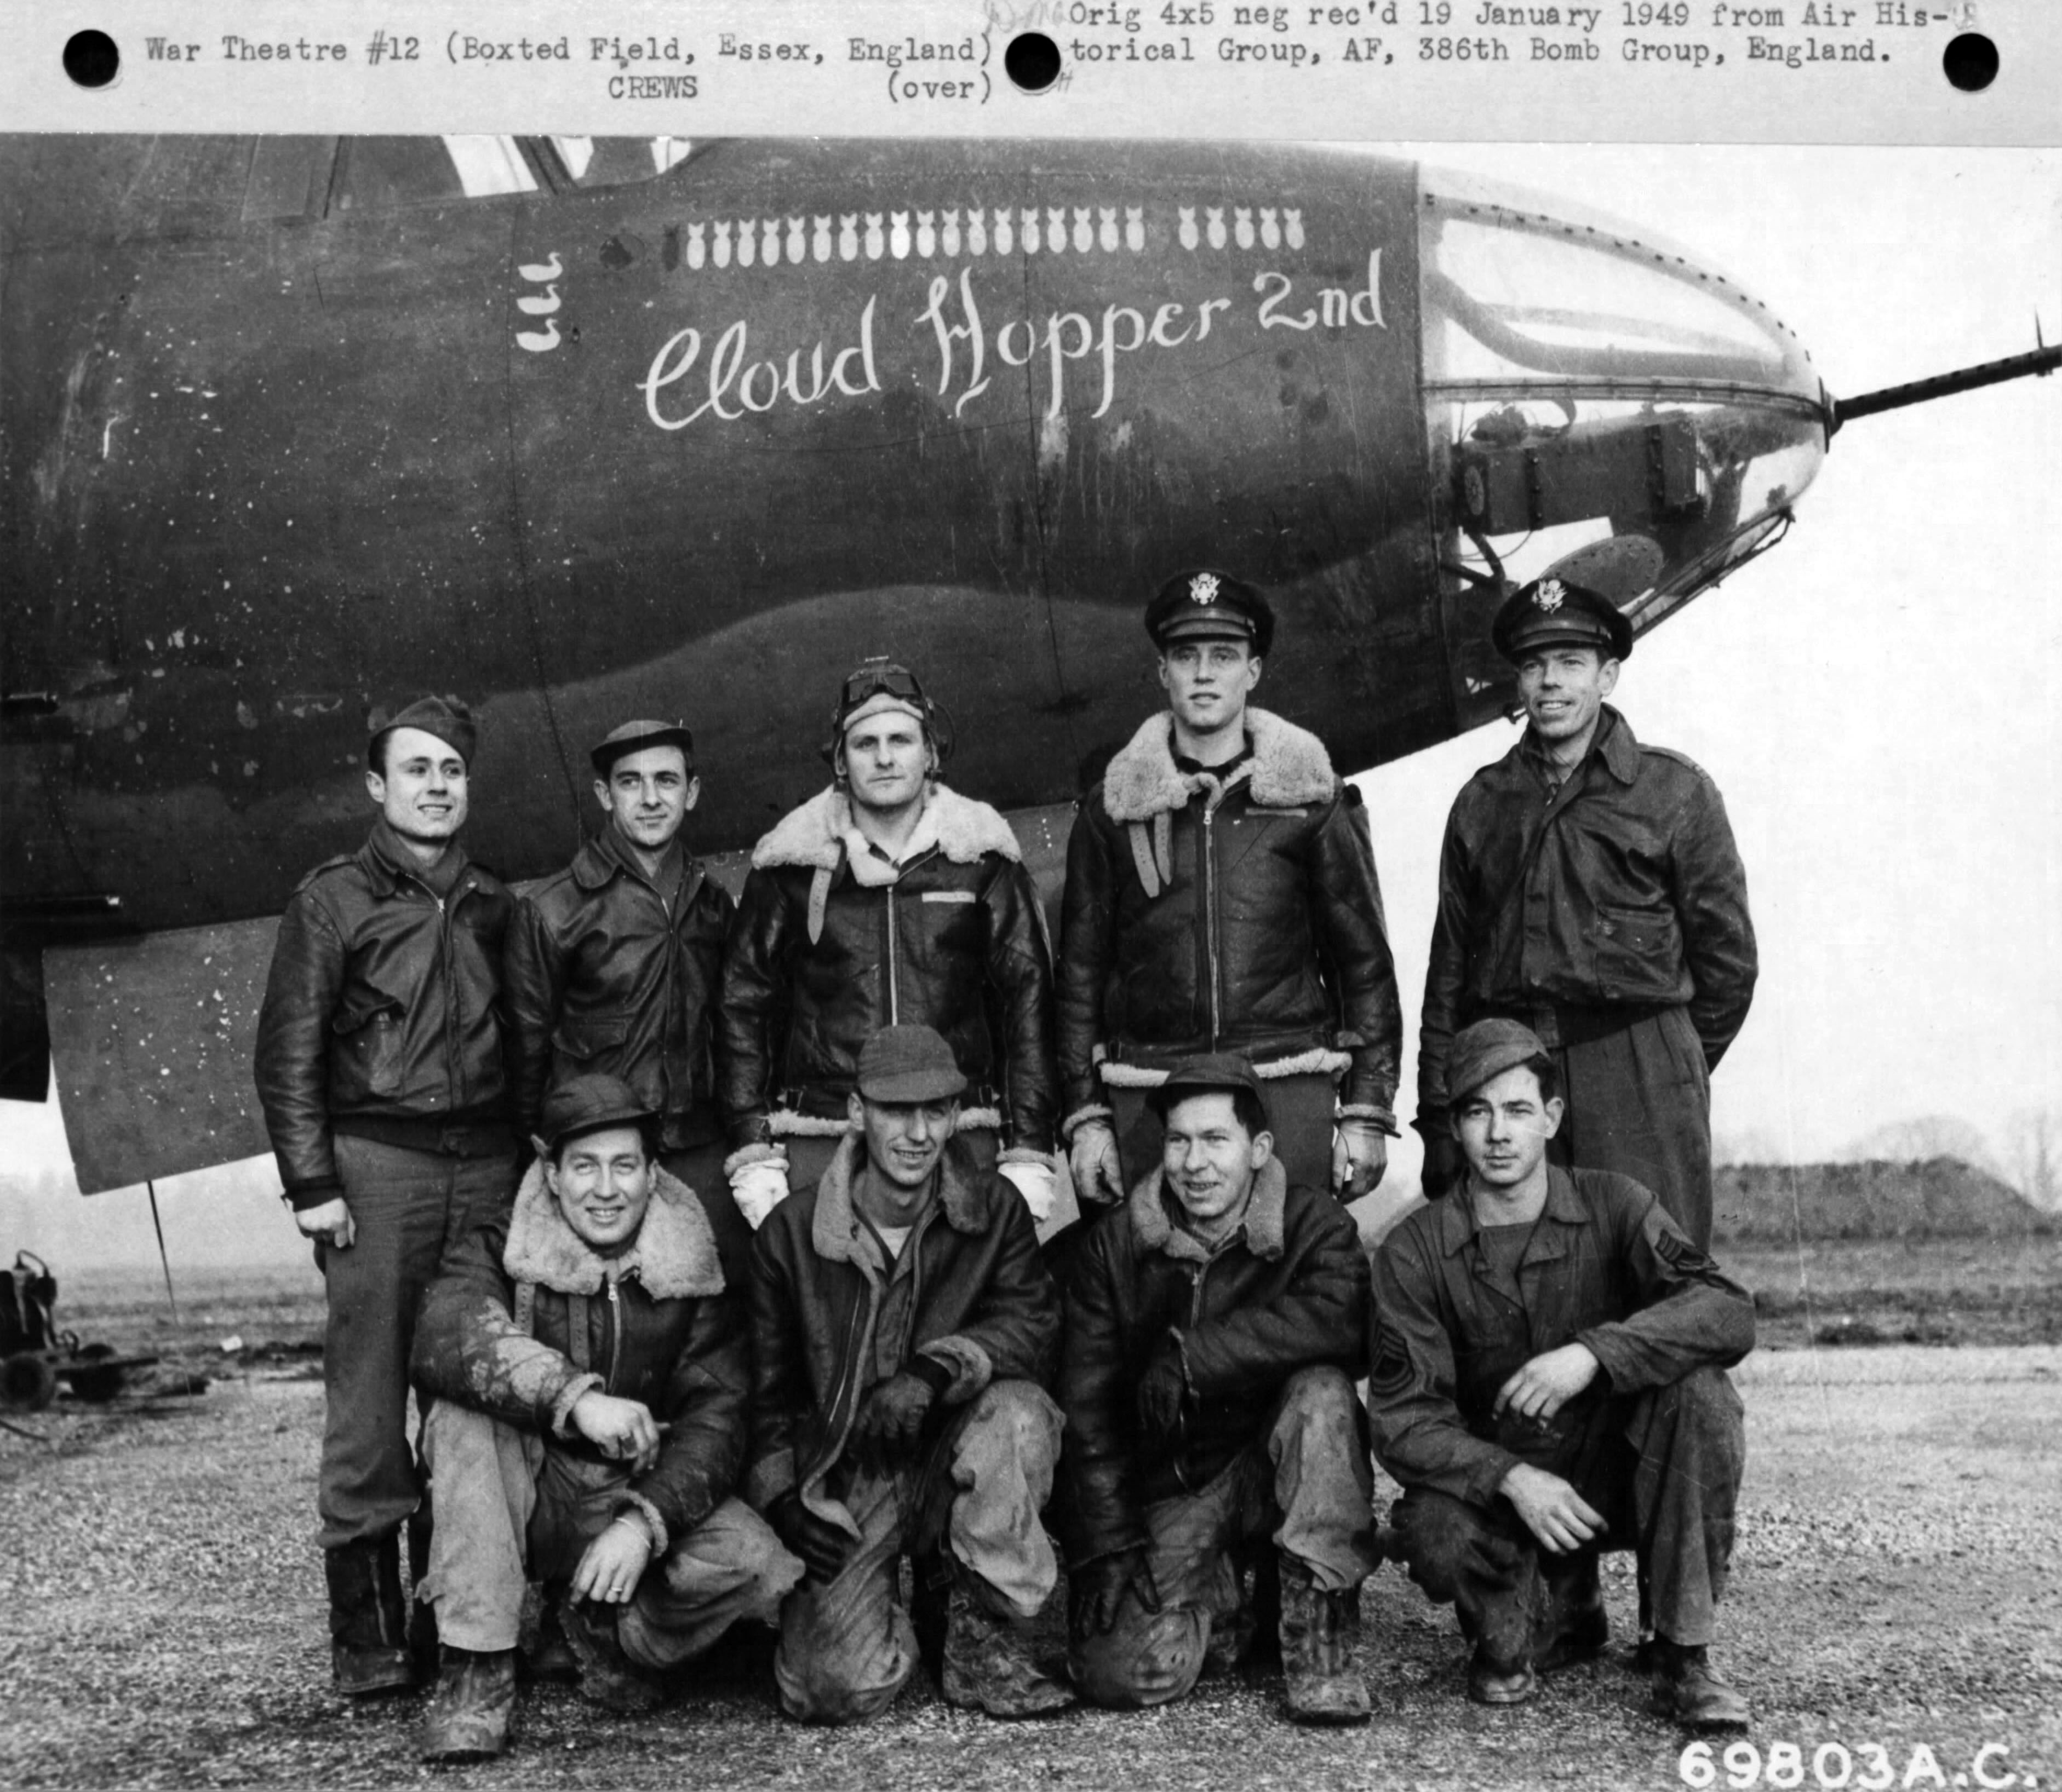 USAAF 41 31763 B 26B Marauder 386BG554BS RUO Cloud Hopper 2nd 01